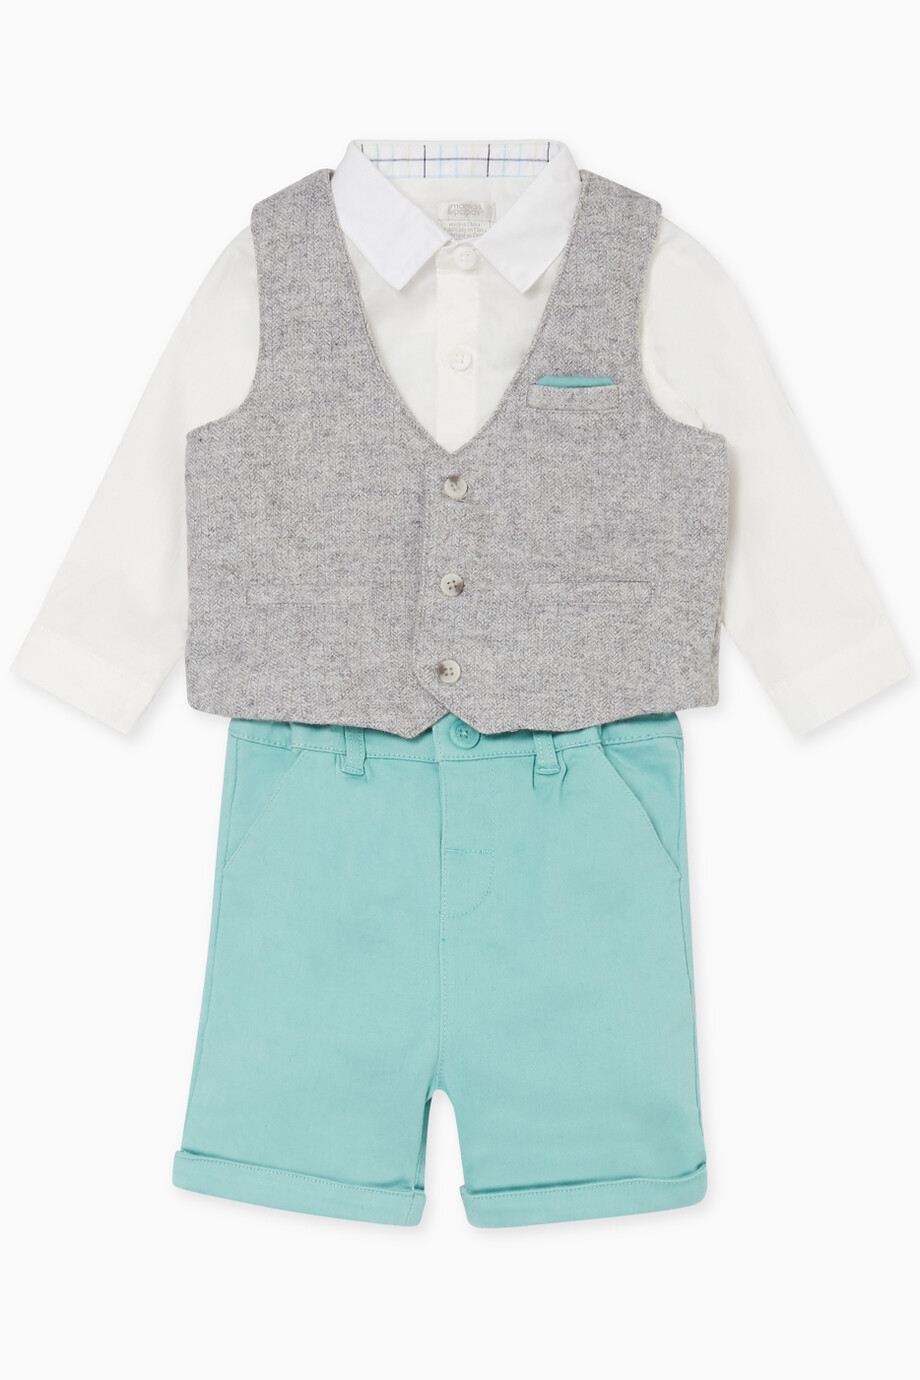 c06d11cee8 Shop Mamas & Papas Grey Shirt, Waistcoat, Shorts & Hat Set for Kids ...